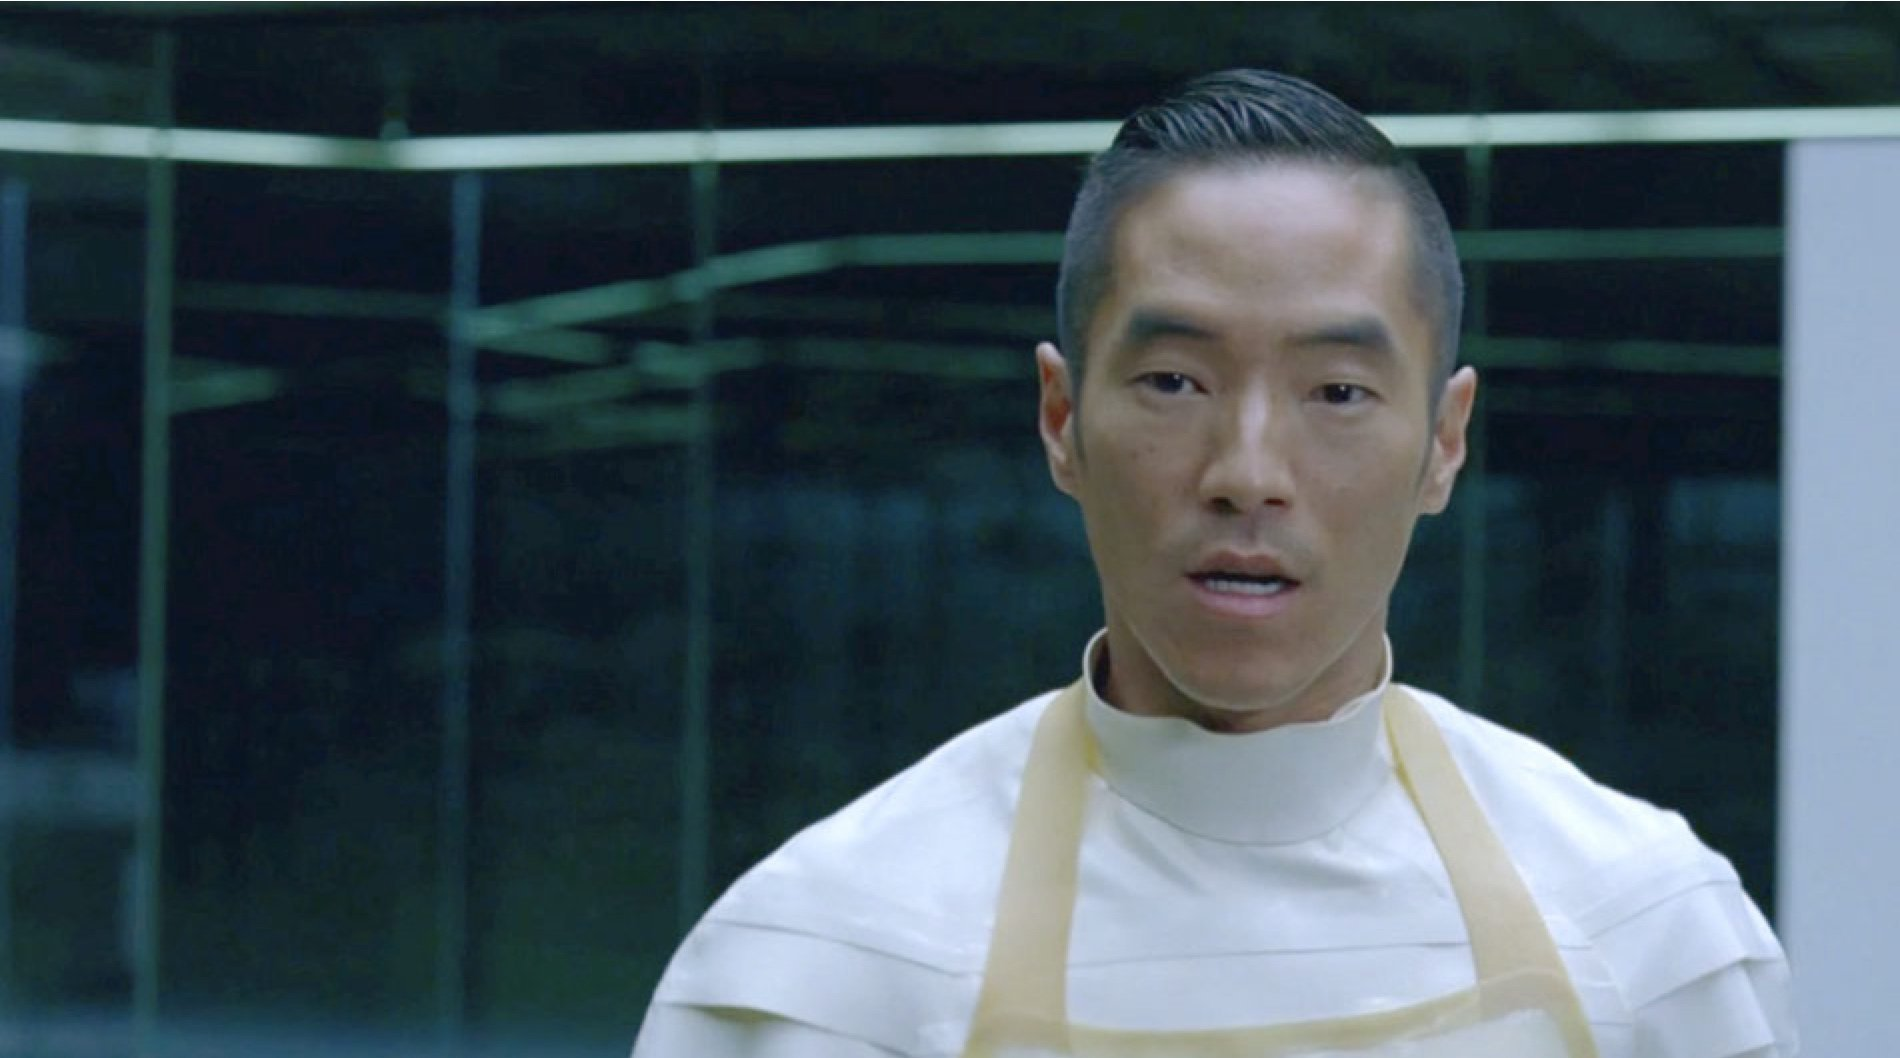 Leonardo Nam as Felix Lutz in HBO's Westworld